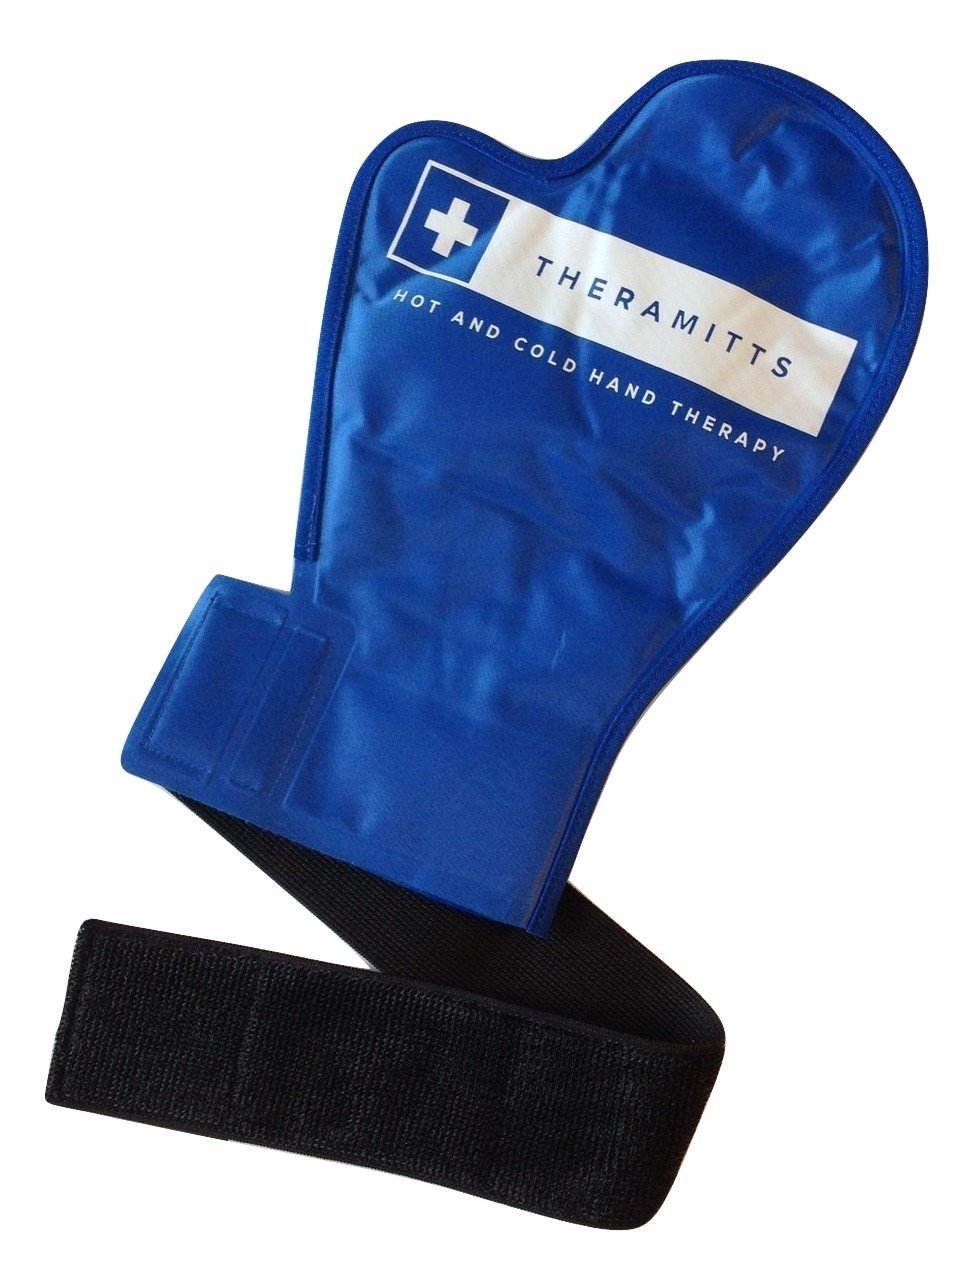 Hot and Cold Therapy Gel Gloves (Single) - Ice and Heat Therapy Mittens for Arthritis, Finger and Hand Injuries, and Carpal Tunnel by TheraMitts